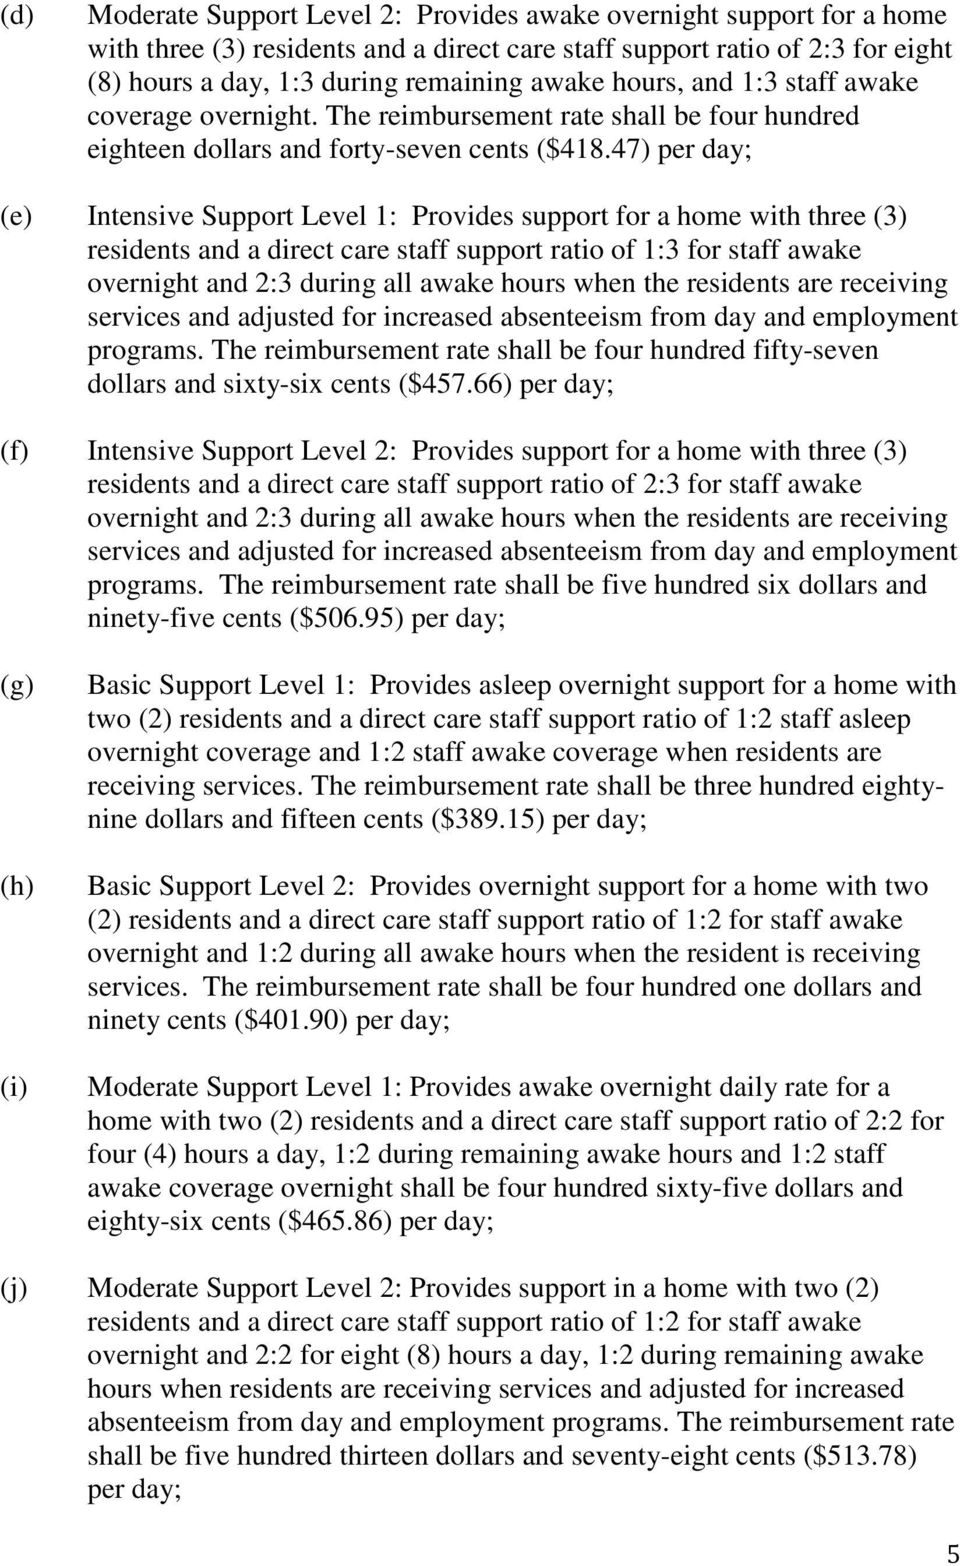 47) per day; (e) Intensive Support Level 1: Provides support for a home with three (3) residents and a direct care staff support ratio of 1:3 for staff awake overnight and 2:3 during all awake hours